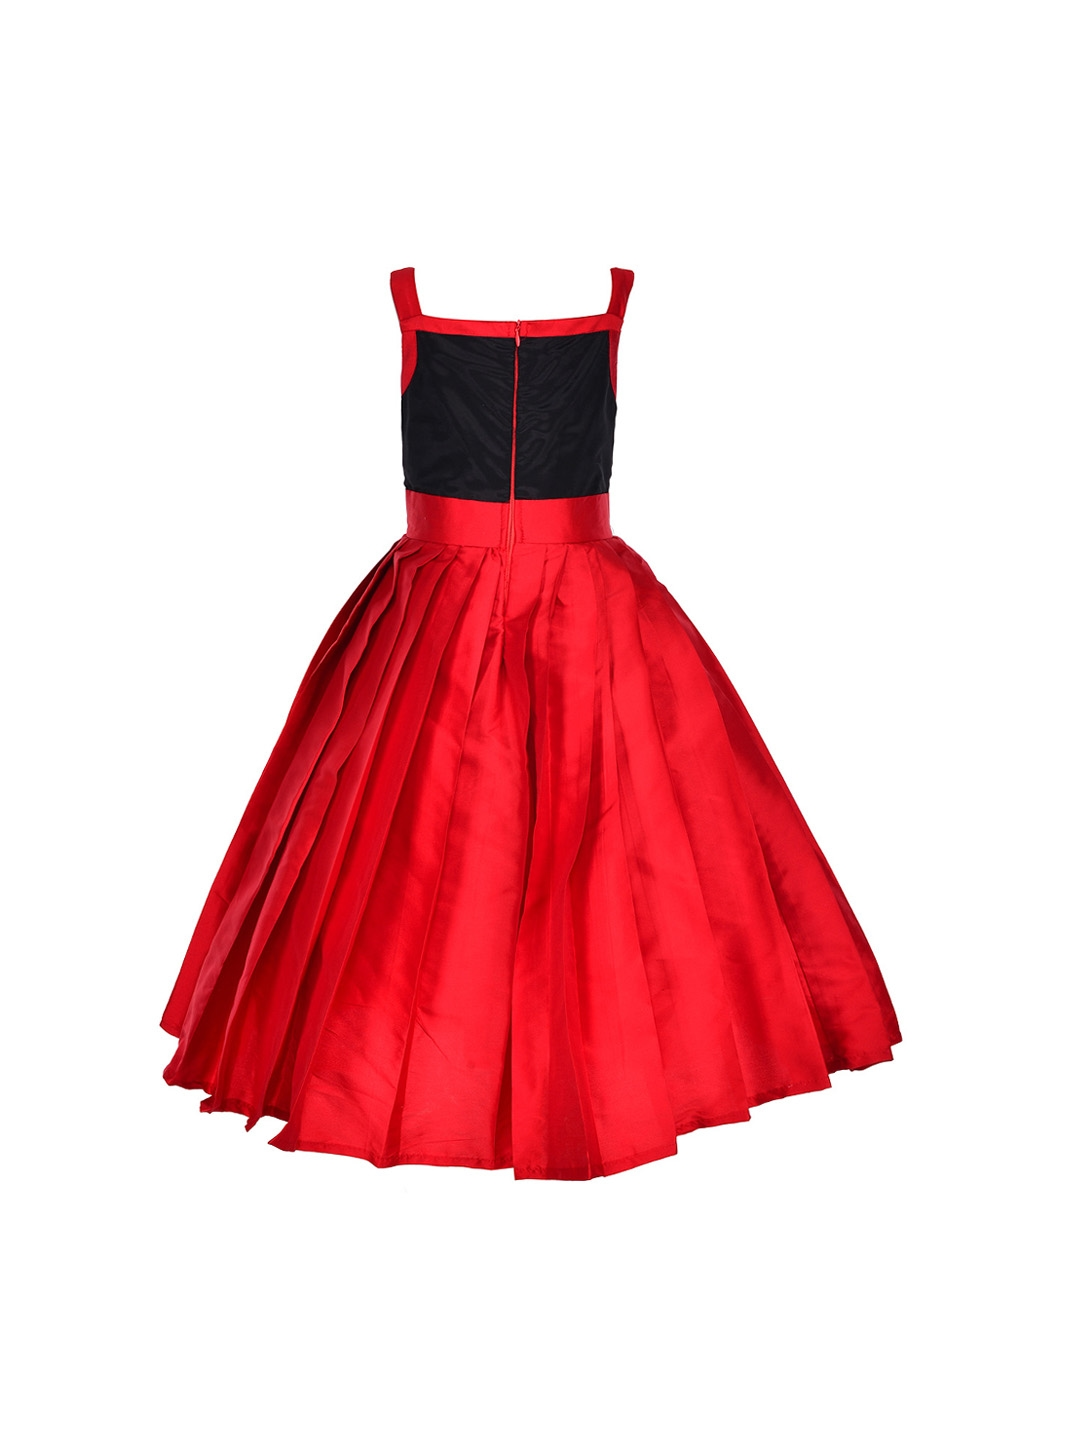 55d0c9ca475b Buy Samsara Couture Girls Red Solid Fit And Flare Dress - Dresses ...